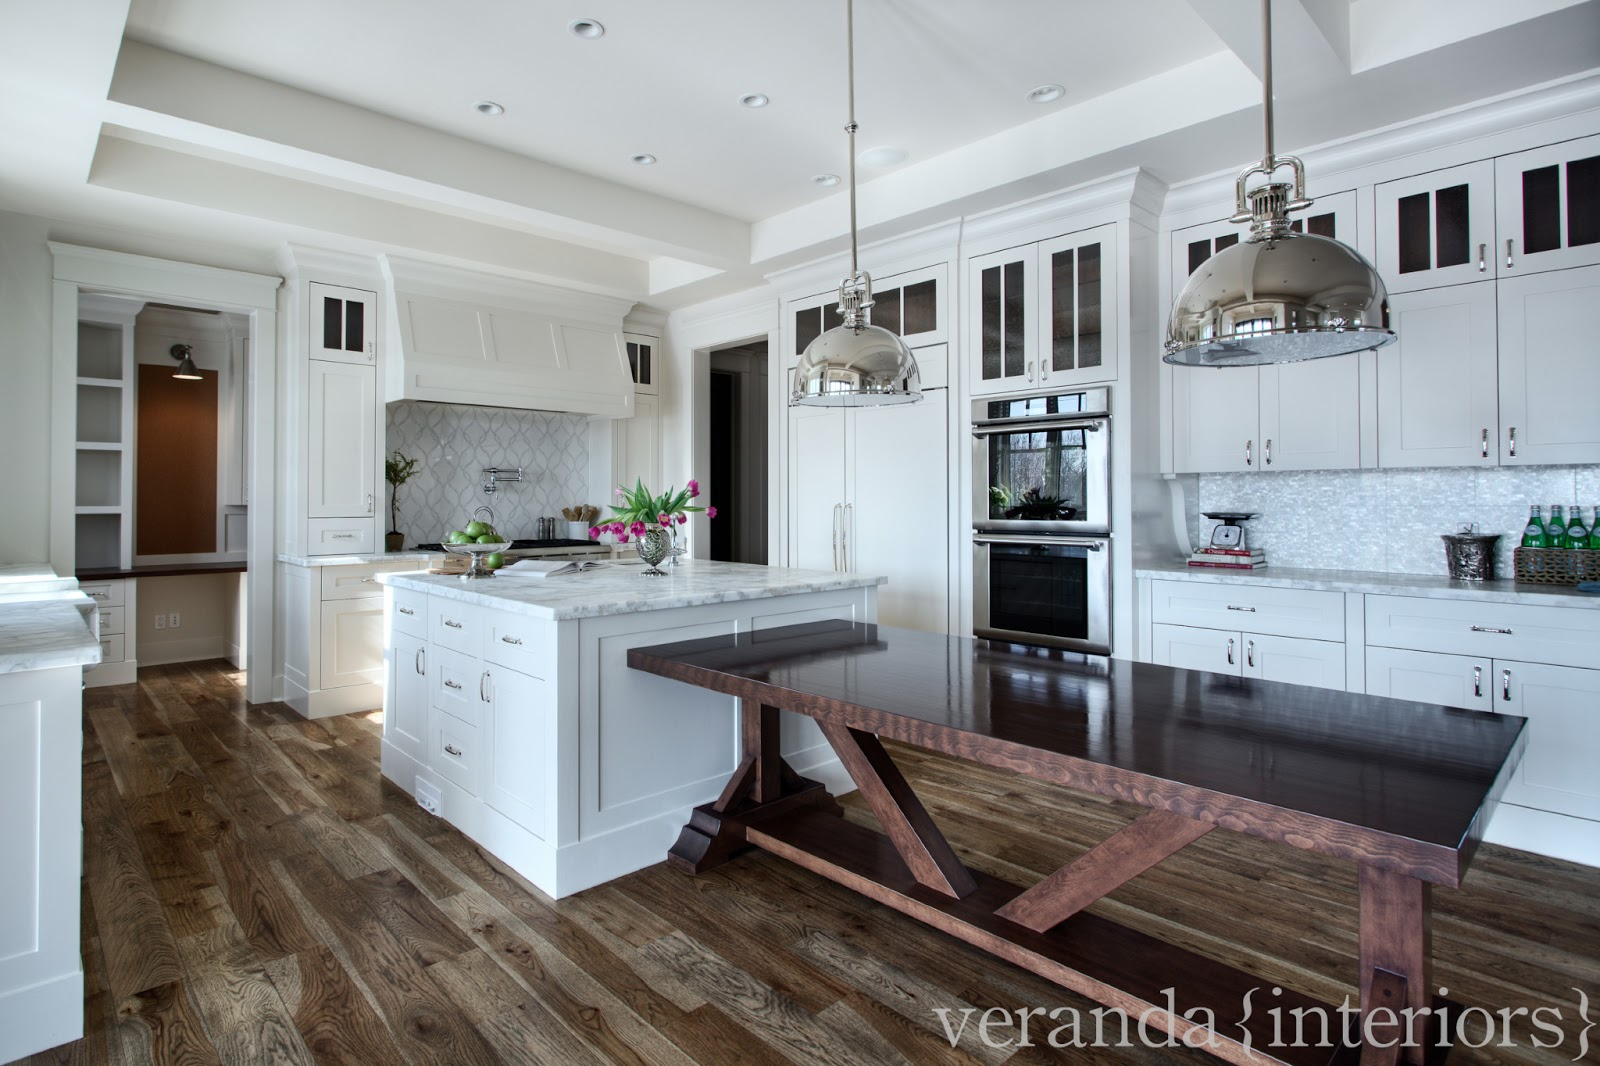 Interiors For Kitchen Watermark 1 Kitchen Veranda Interior Young Professional For